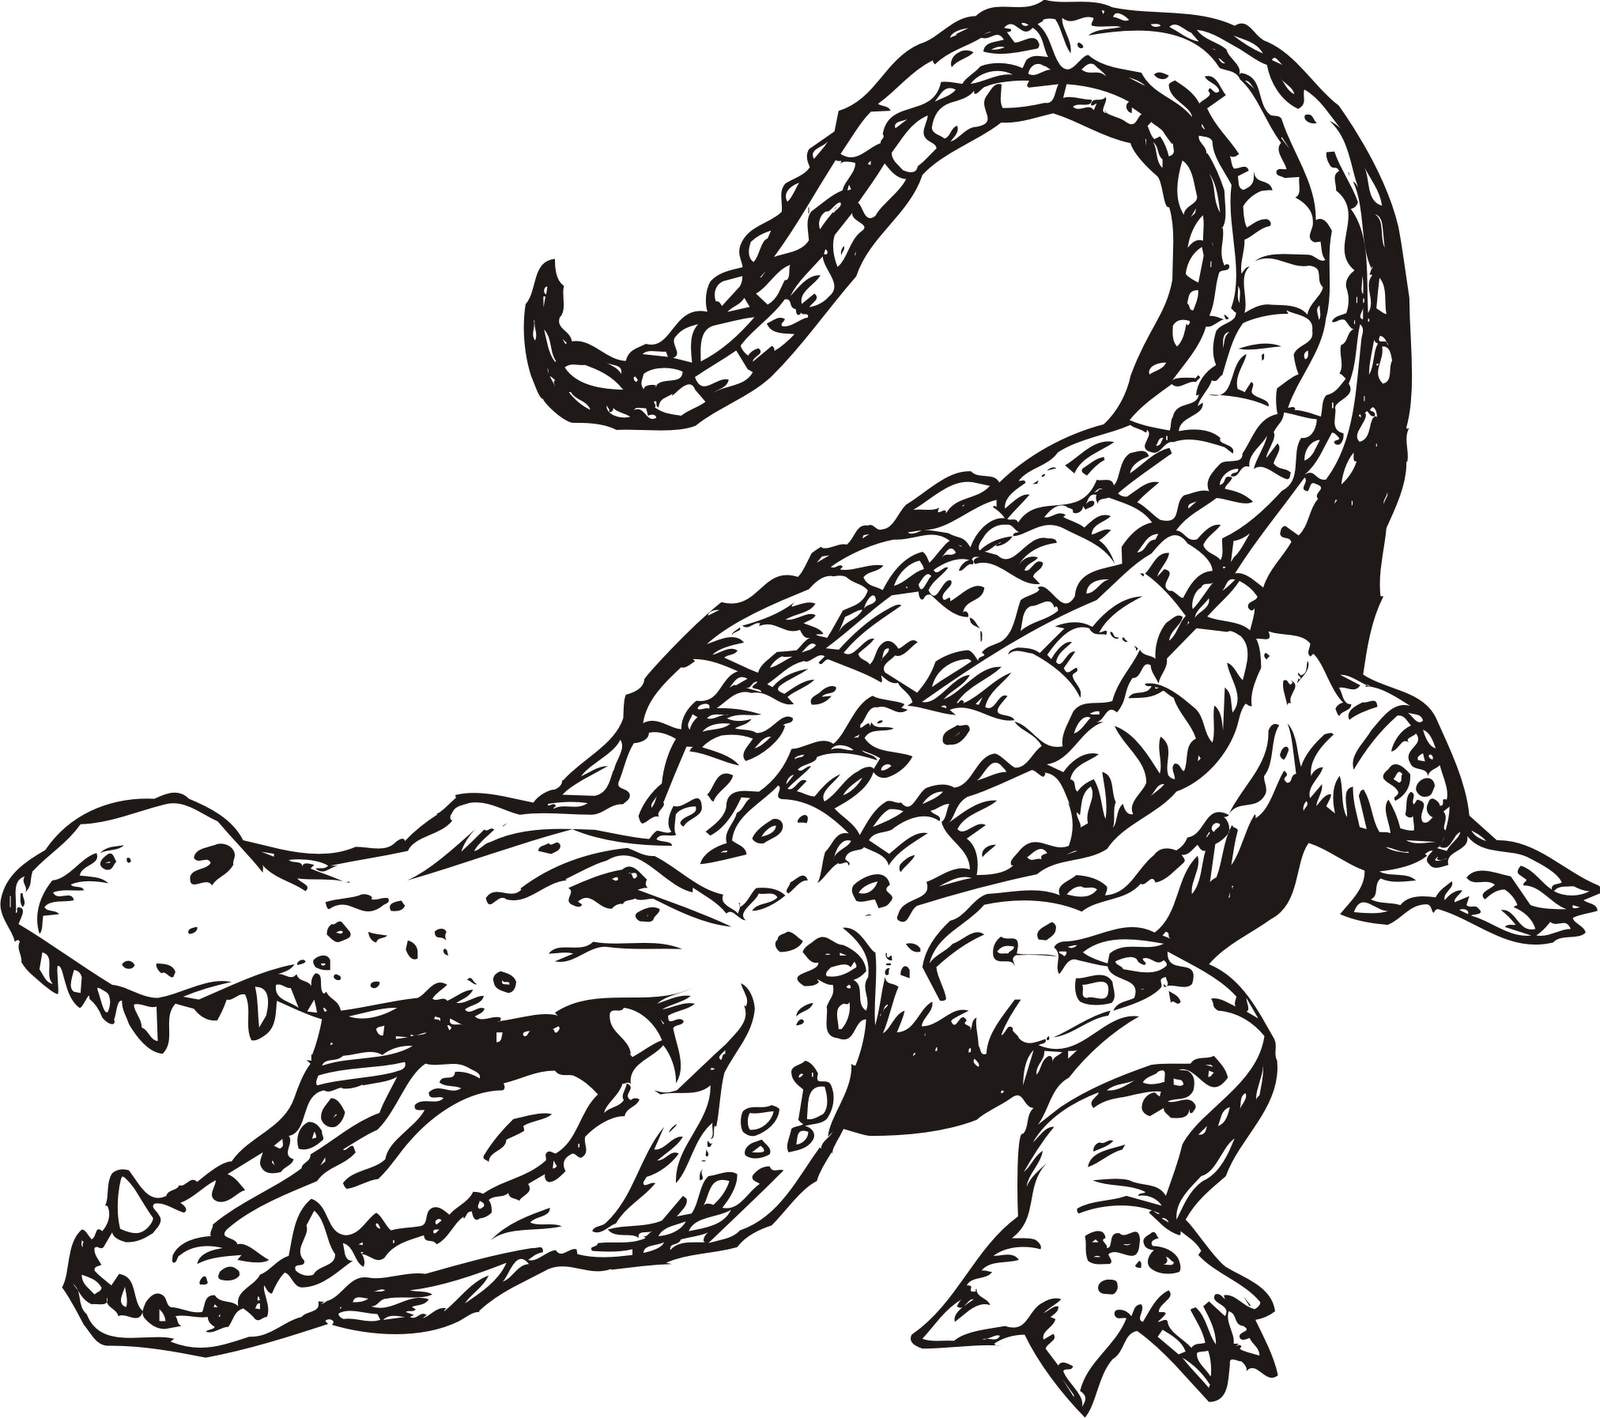 60 images of Alligator Clip Art . You can use these free cliparts for ...